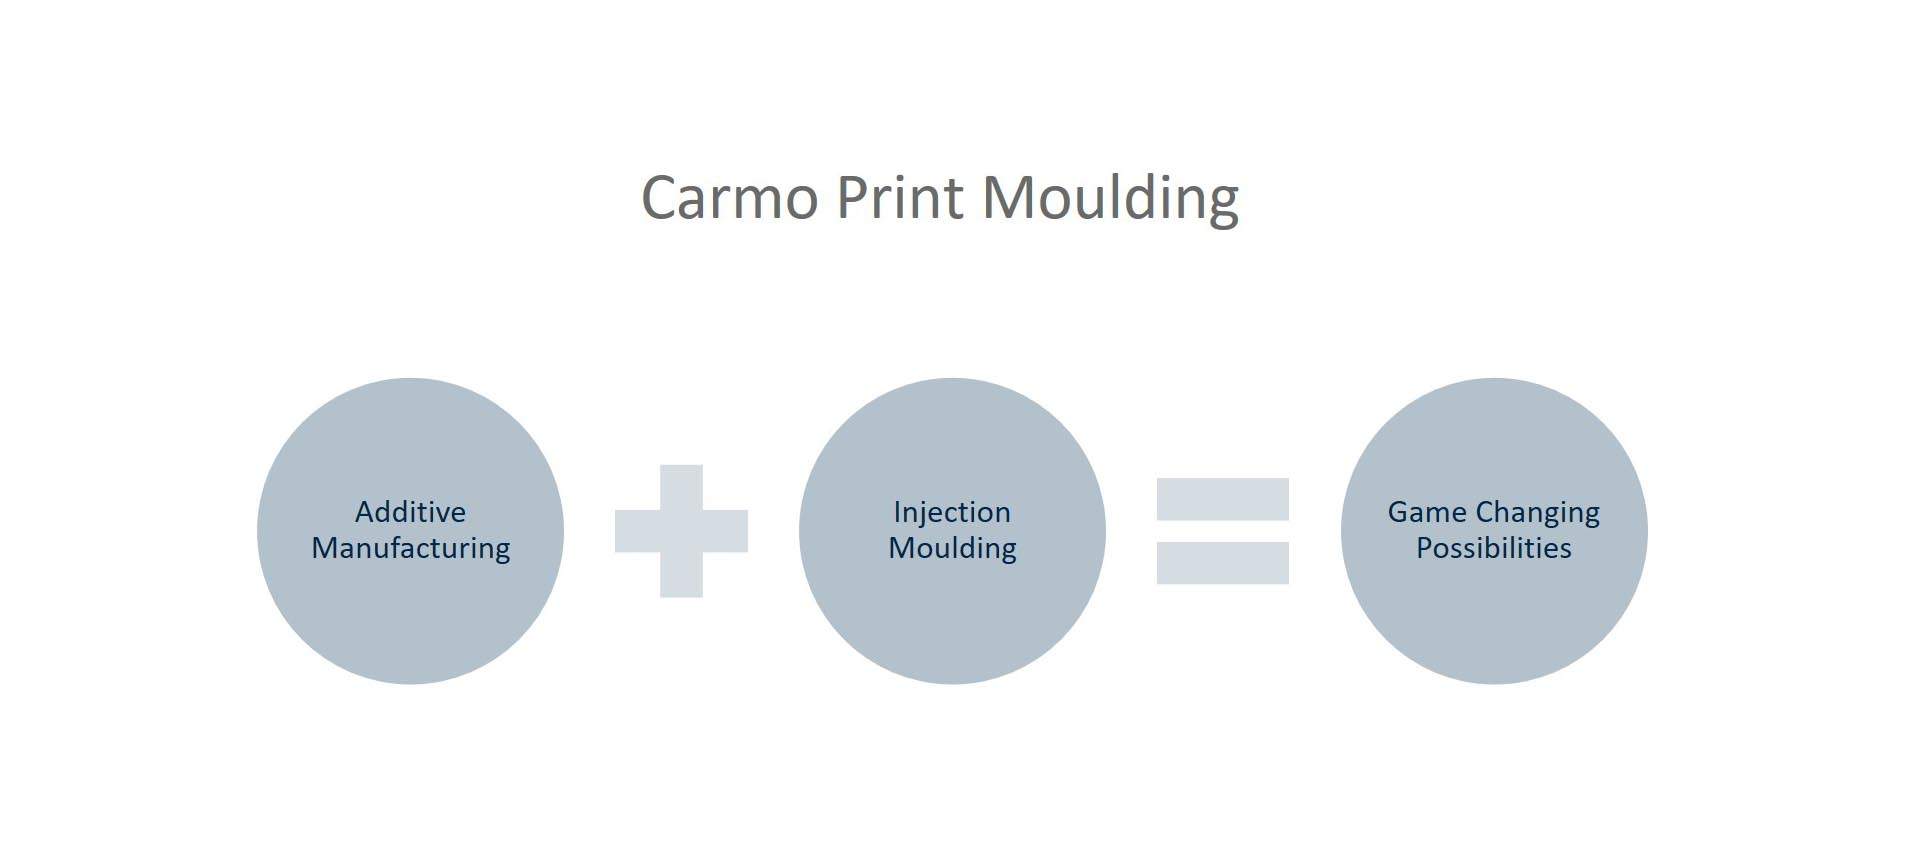 Carmo Print Moulding is a game changer in prototyping